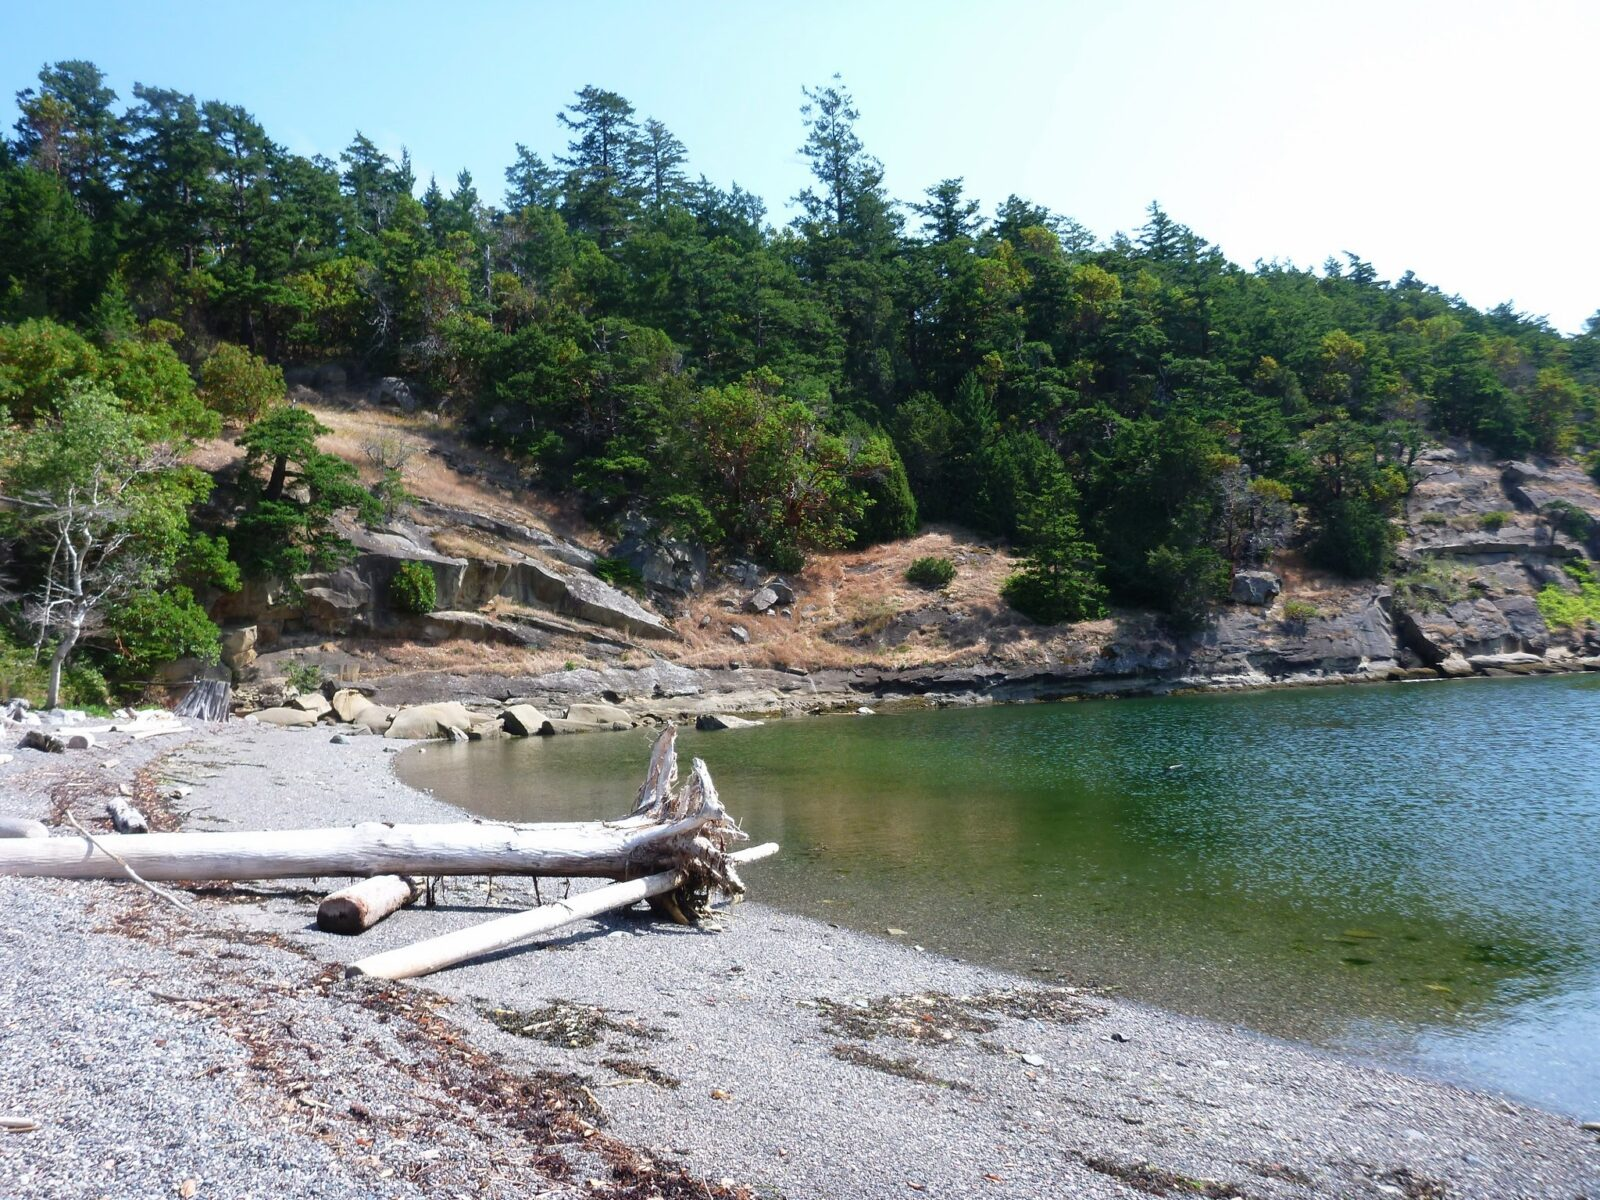 A gravel beach on Sucia Island. The water is shallow and blue green color. The sky is washed out and there are rocky outcroppings around the bay with some trees. There is a long piece of driftwood on the beach